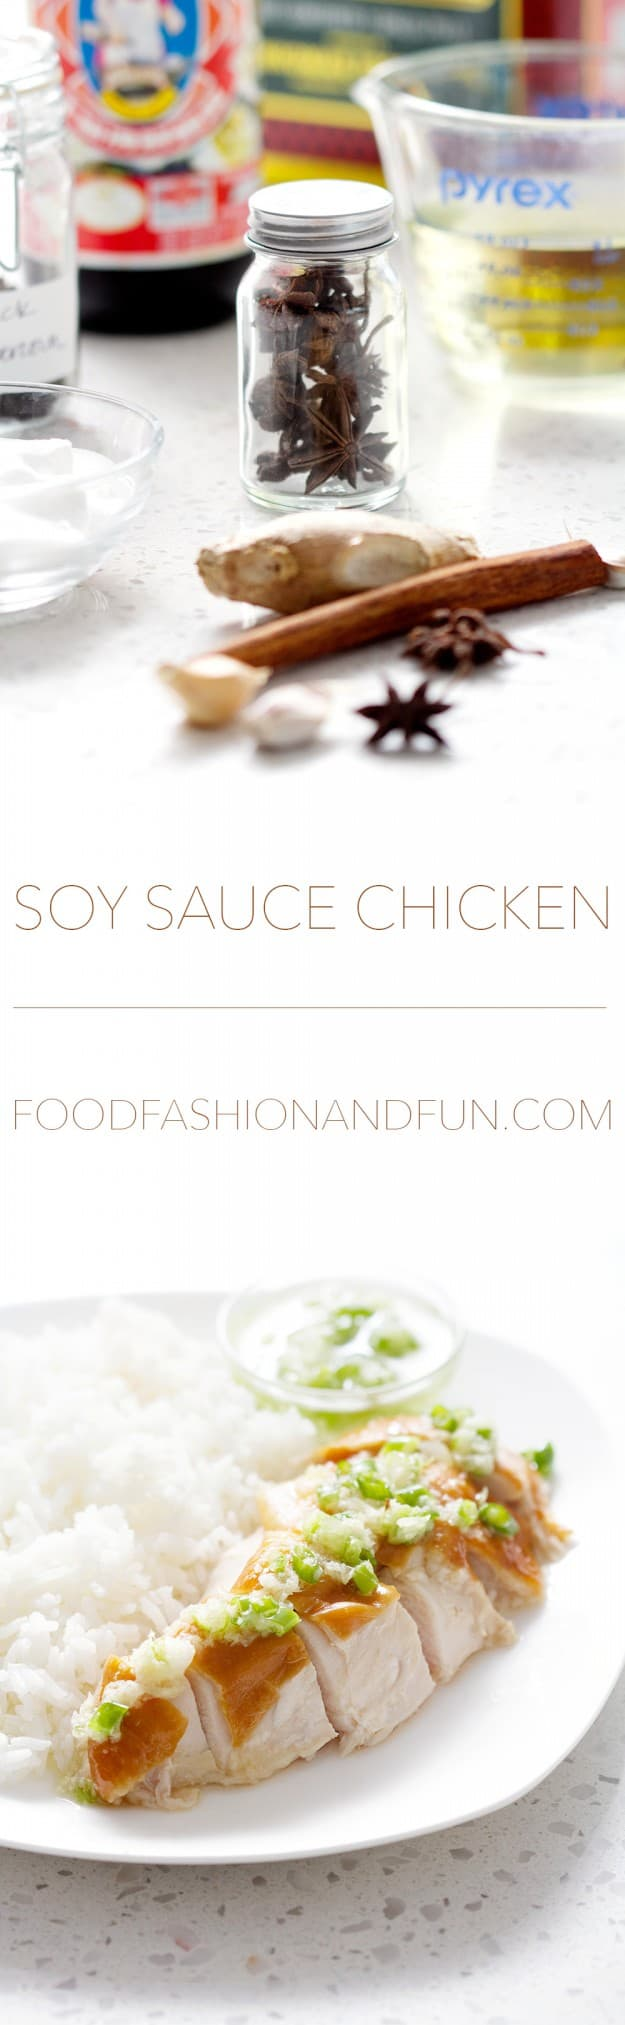 Soy Sauce Chicken from Bon Aippetit